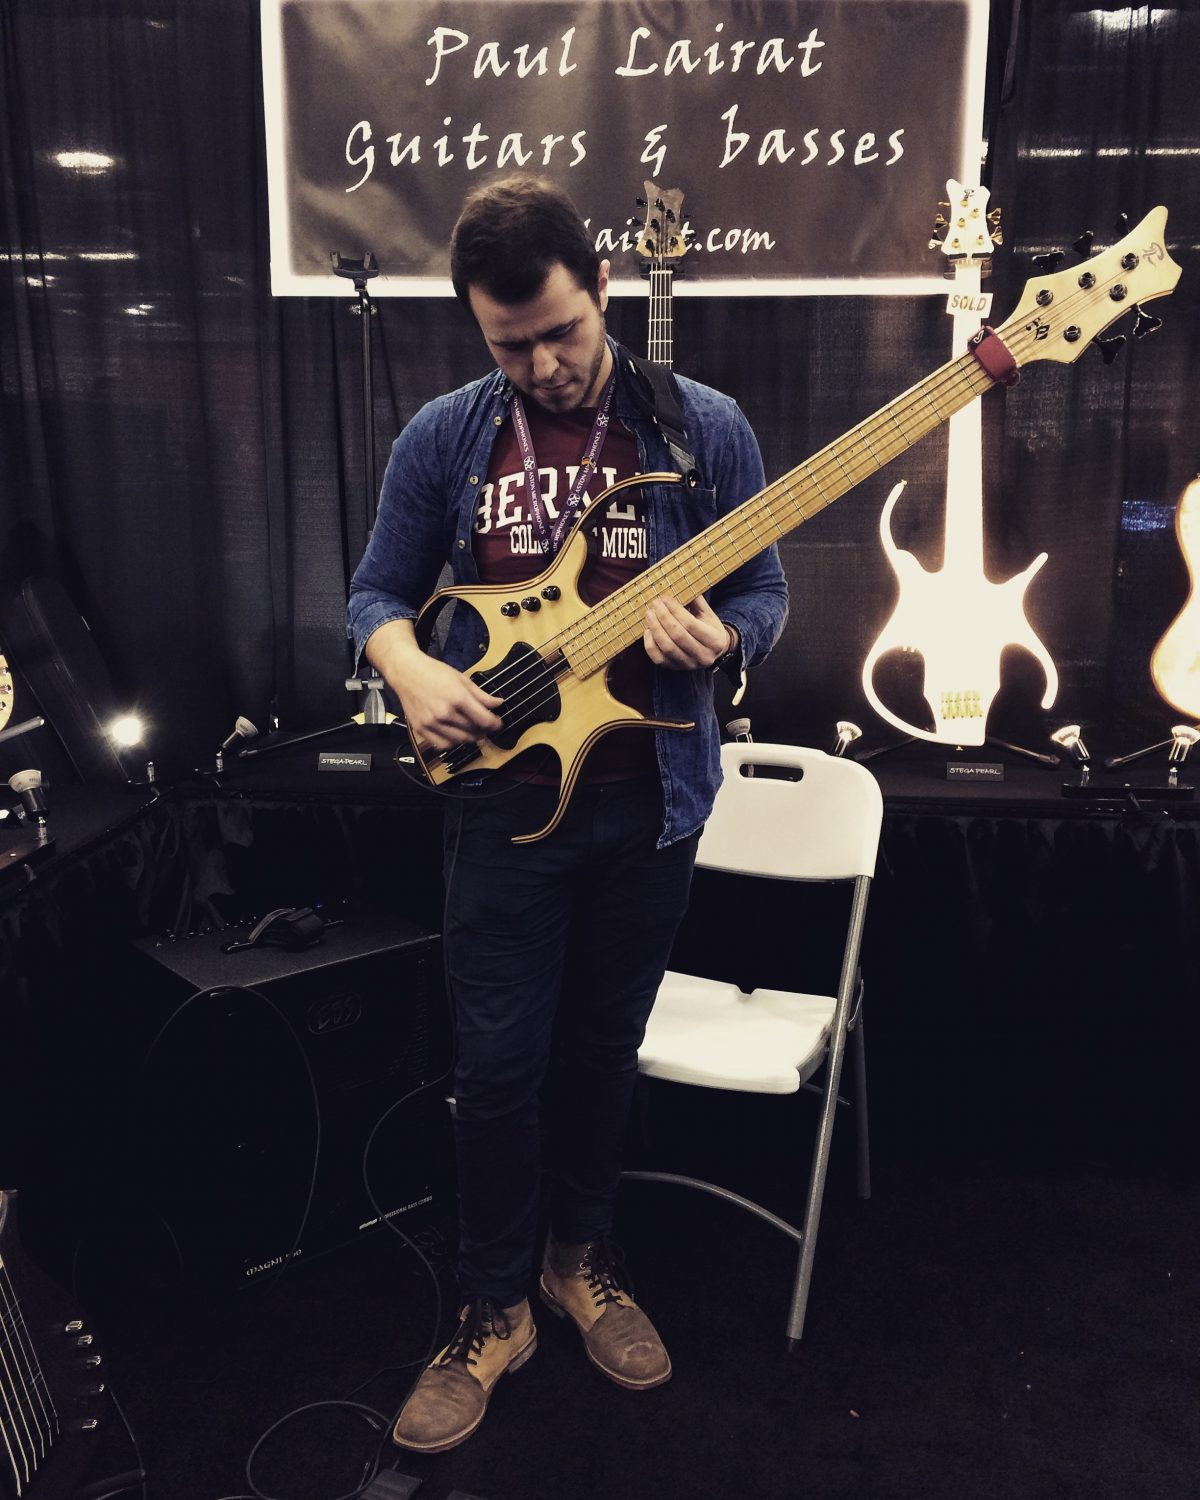 Jamming at the Paul Lairat Booth